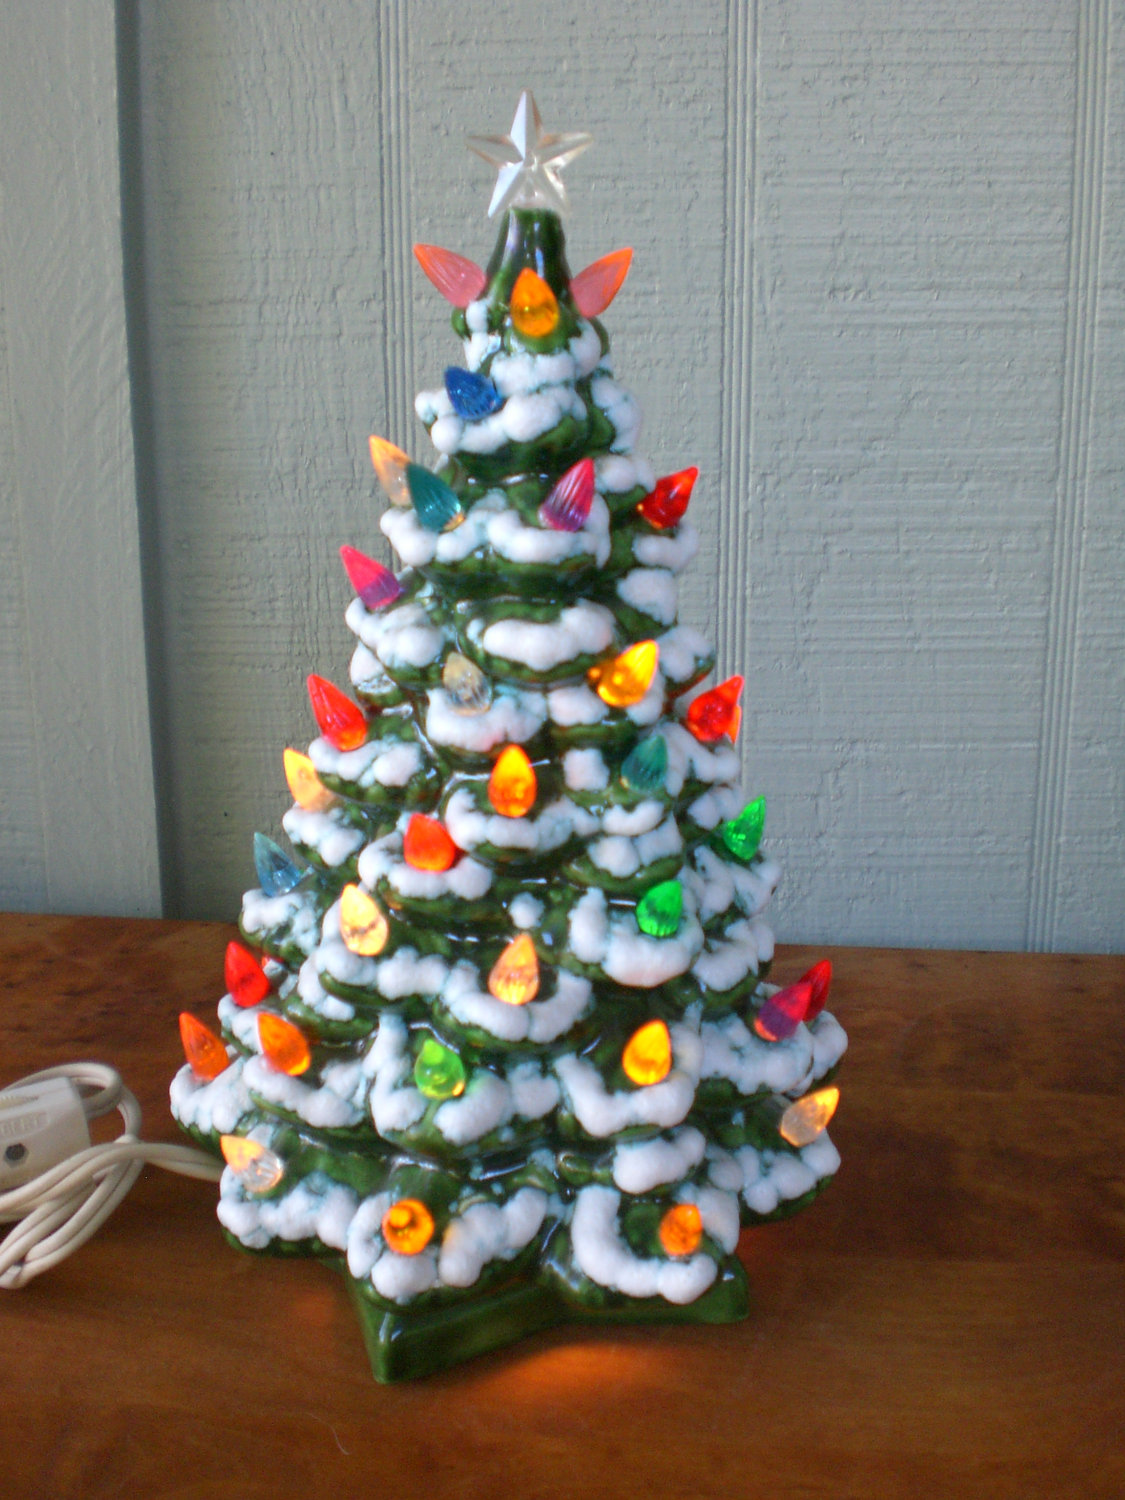 Top 10 Christmas Tree Lamps For Your Great Holiday Warisan Lighting